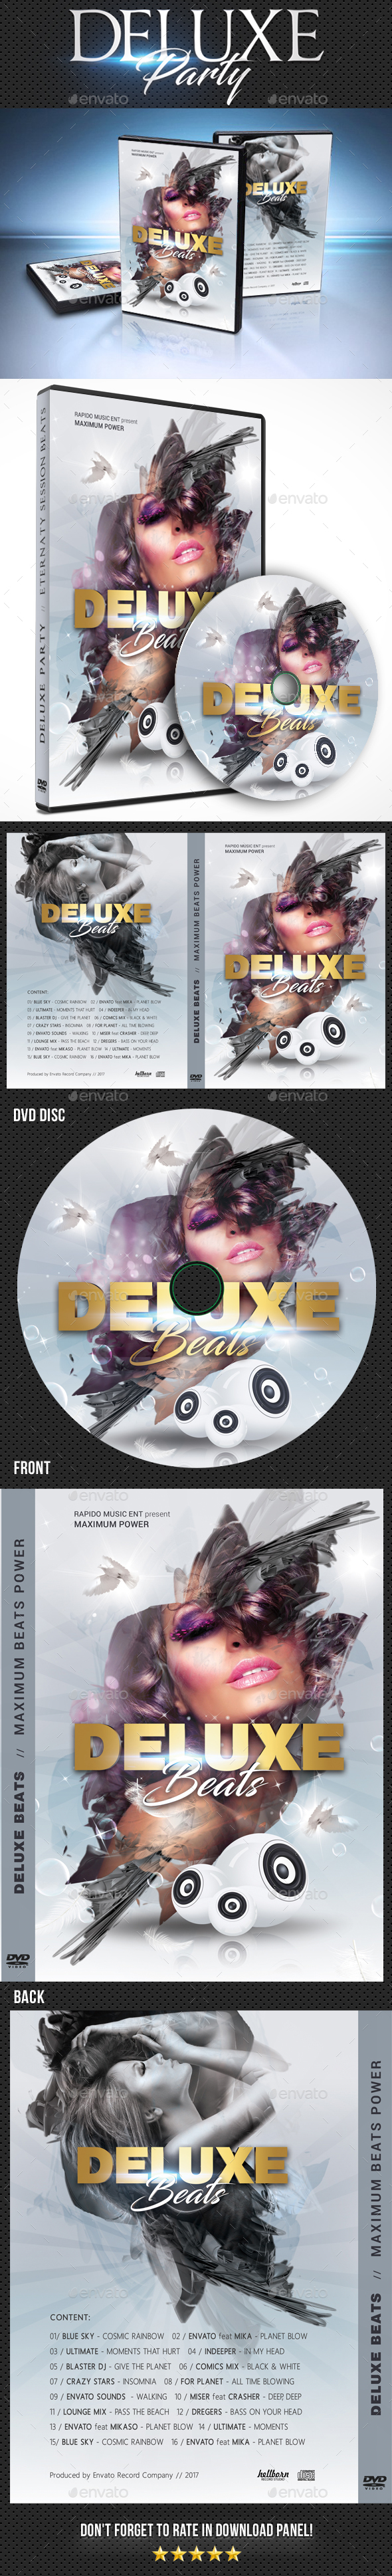 Deluxe Dj Party DVD Cover Template 2 - CD & DVD Artwork Print Templates